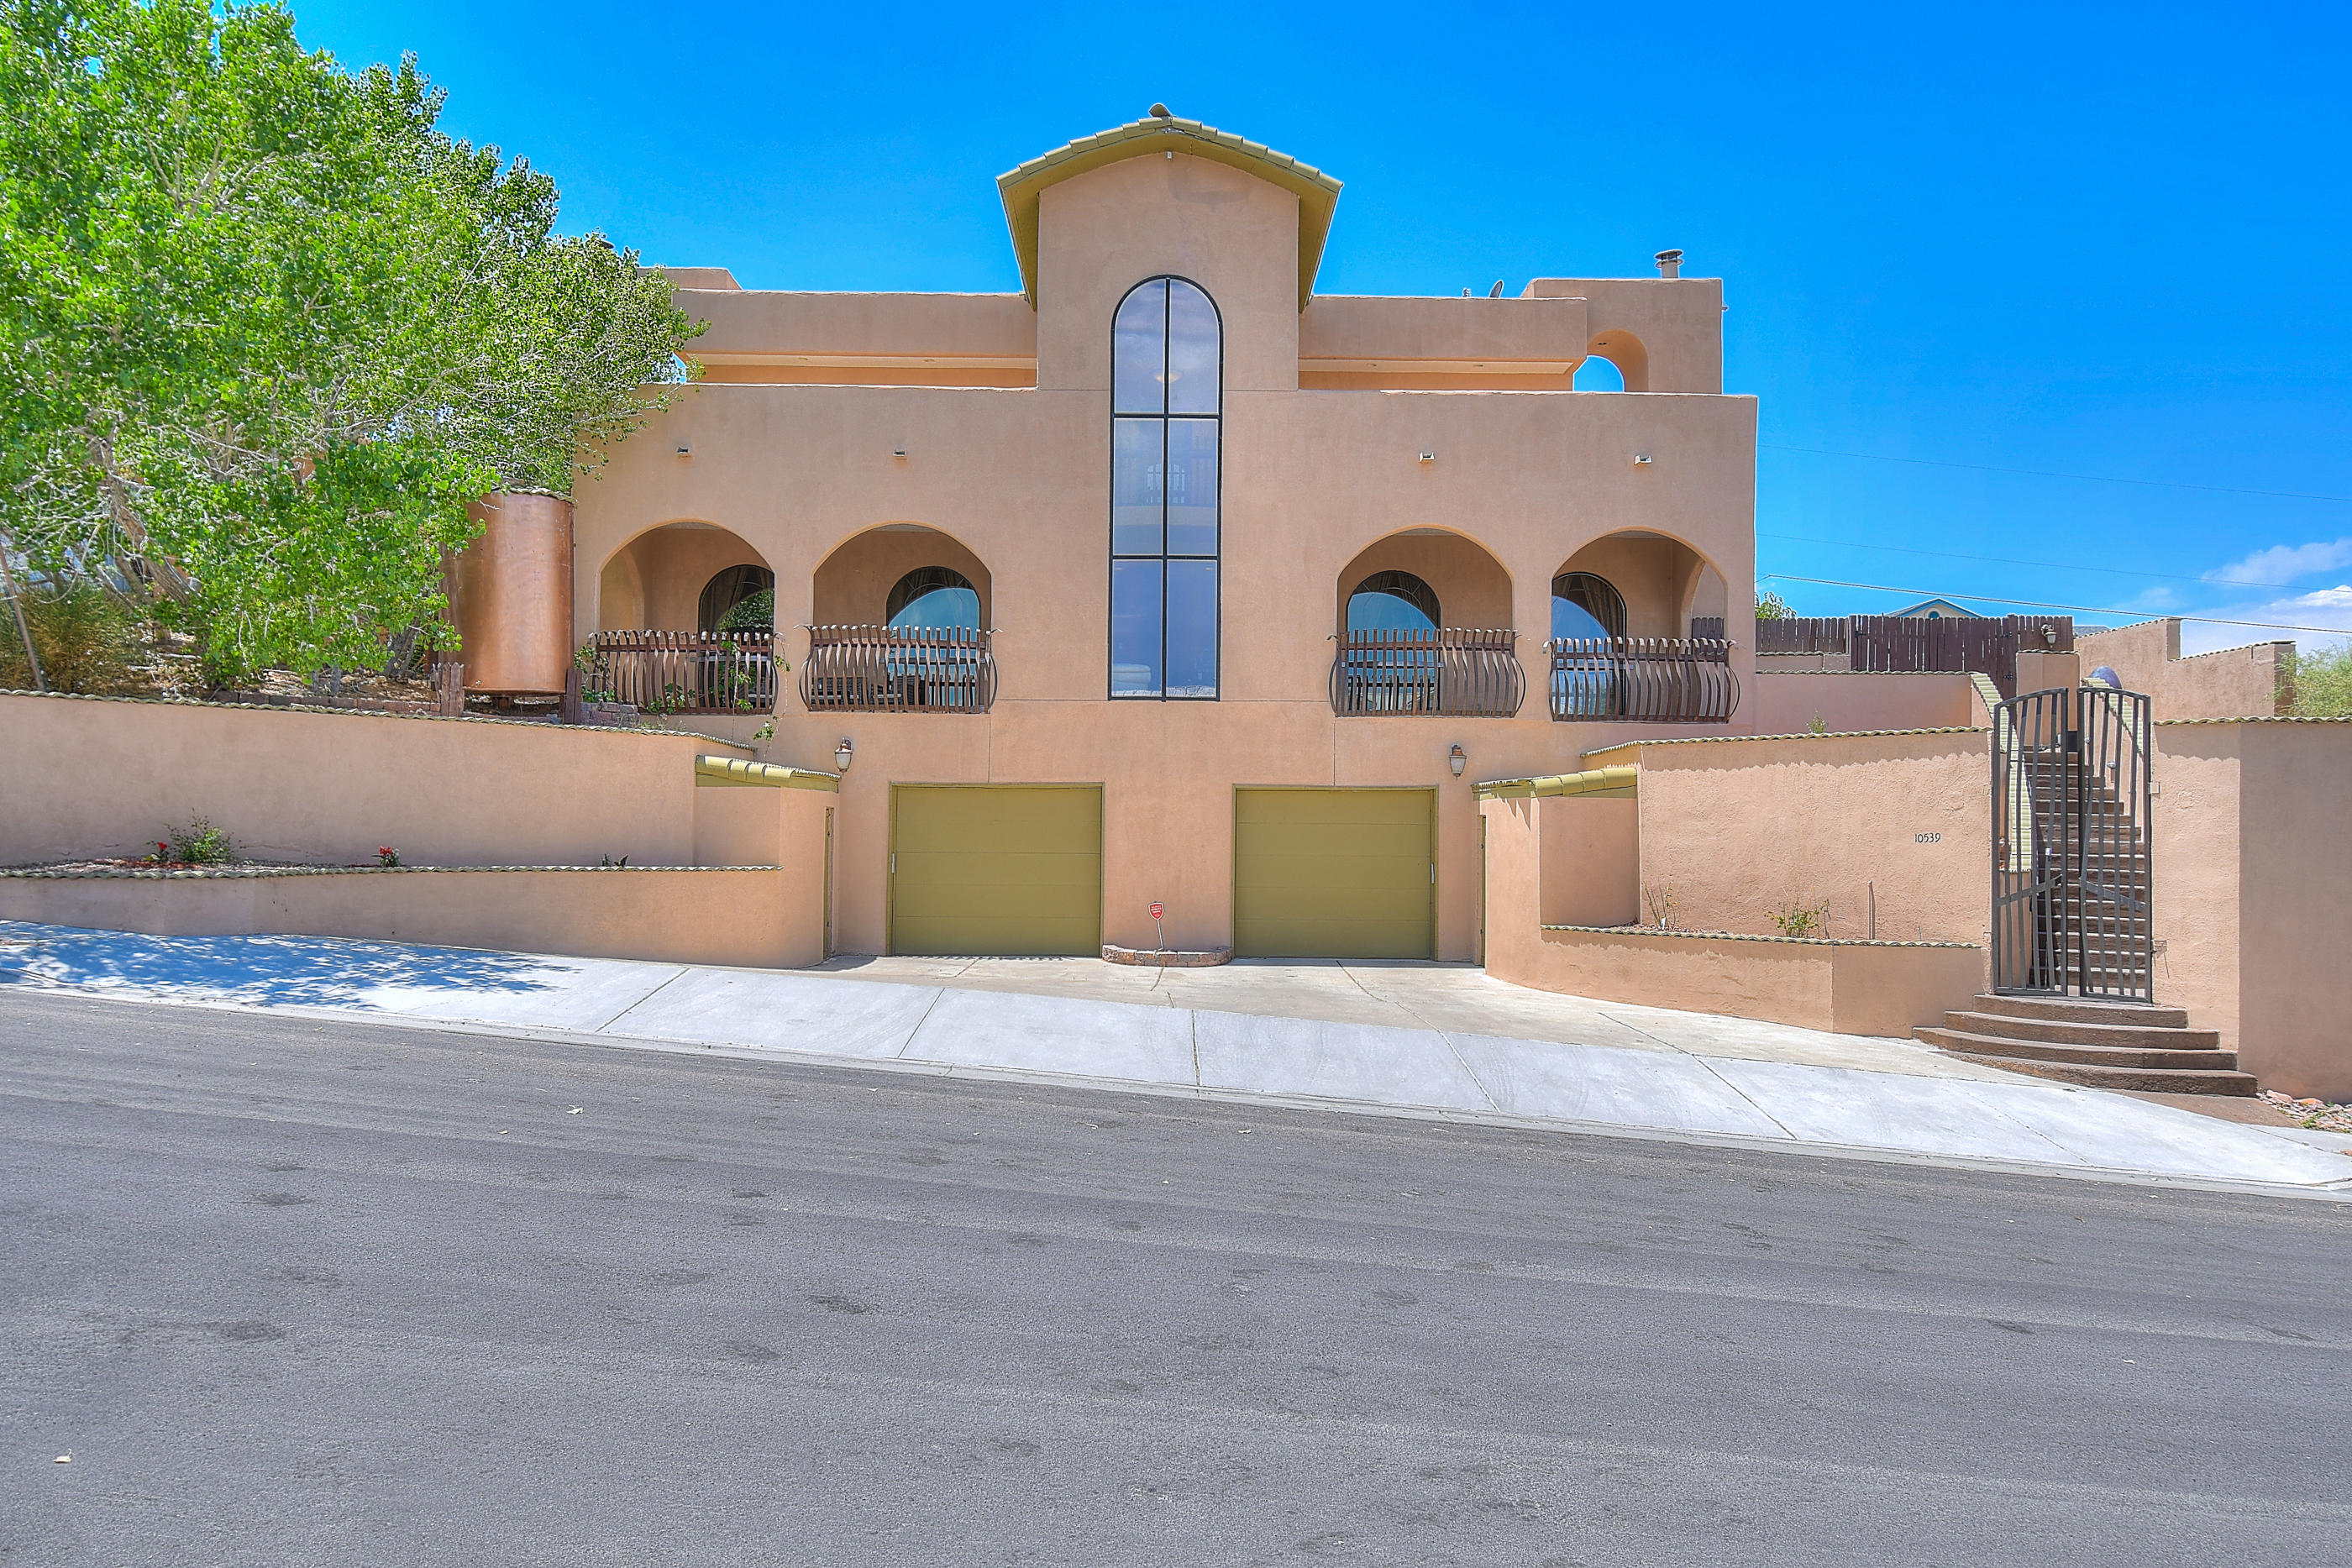 Welcome home to this gorgeous custom Tuscan beauty w/amazing views of the Sandia's! You will be overwhelmed by all of the stunning upgrades. 5 or 6 bedrooms & 3 full baths allows room for large/extended families. Main level bedrooms open to the private patio. Chef's dream kitchen boasts huge gas range, w/griddle and hood. Large pantry, separate wet bar & lots of cabinet space. Sealed brick counter tops on bar/island opens to formal dining space w/fireplace-perfect for entertaining. Spacious bedrooms, large laundry room and two living spaces round out main floor. Upstairs you will find a master retreat w/coffee bar and extra large master bath w/all the features one could ask for. New roof in 2019 & elevator in 2018. Tons of storage. Move in ready. Come and see this unique home today!